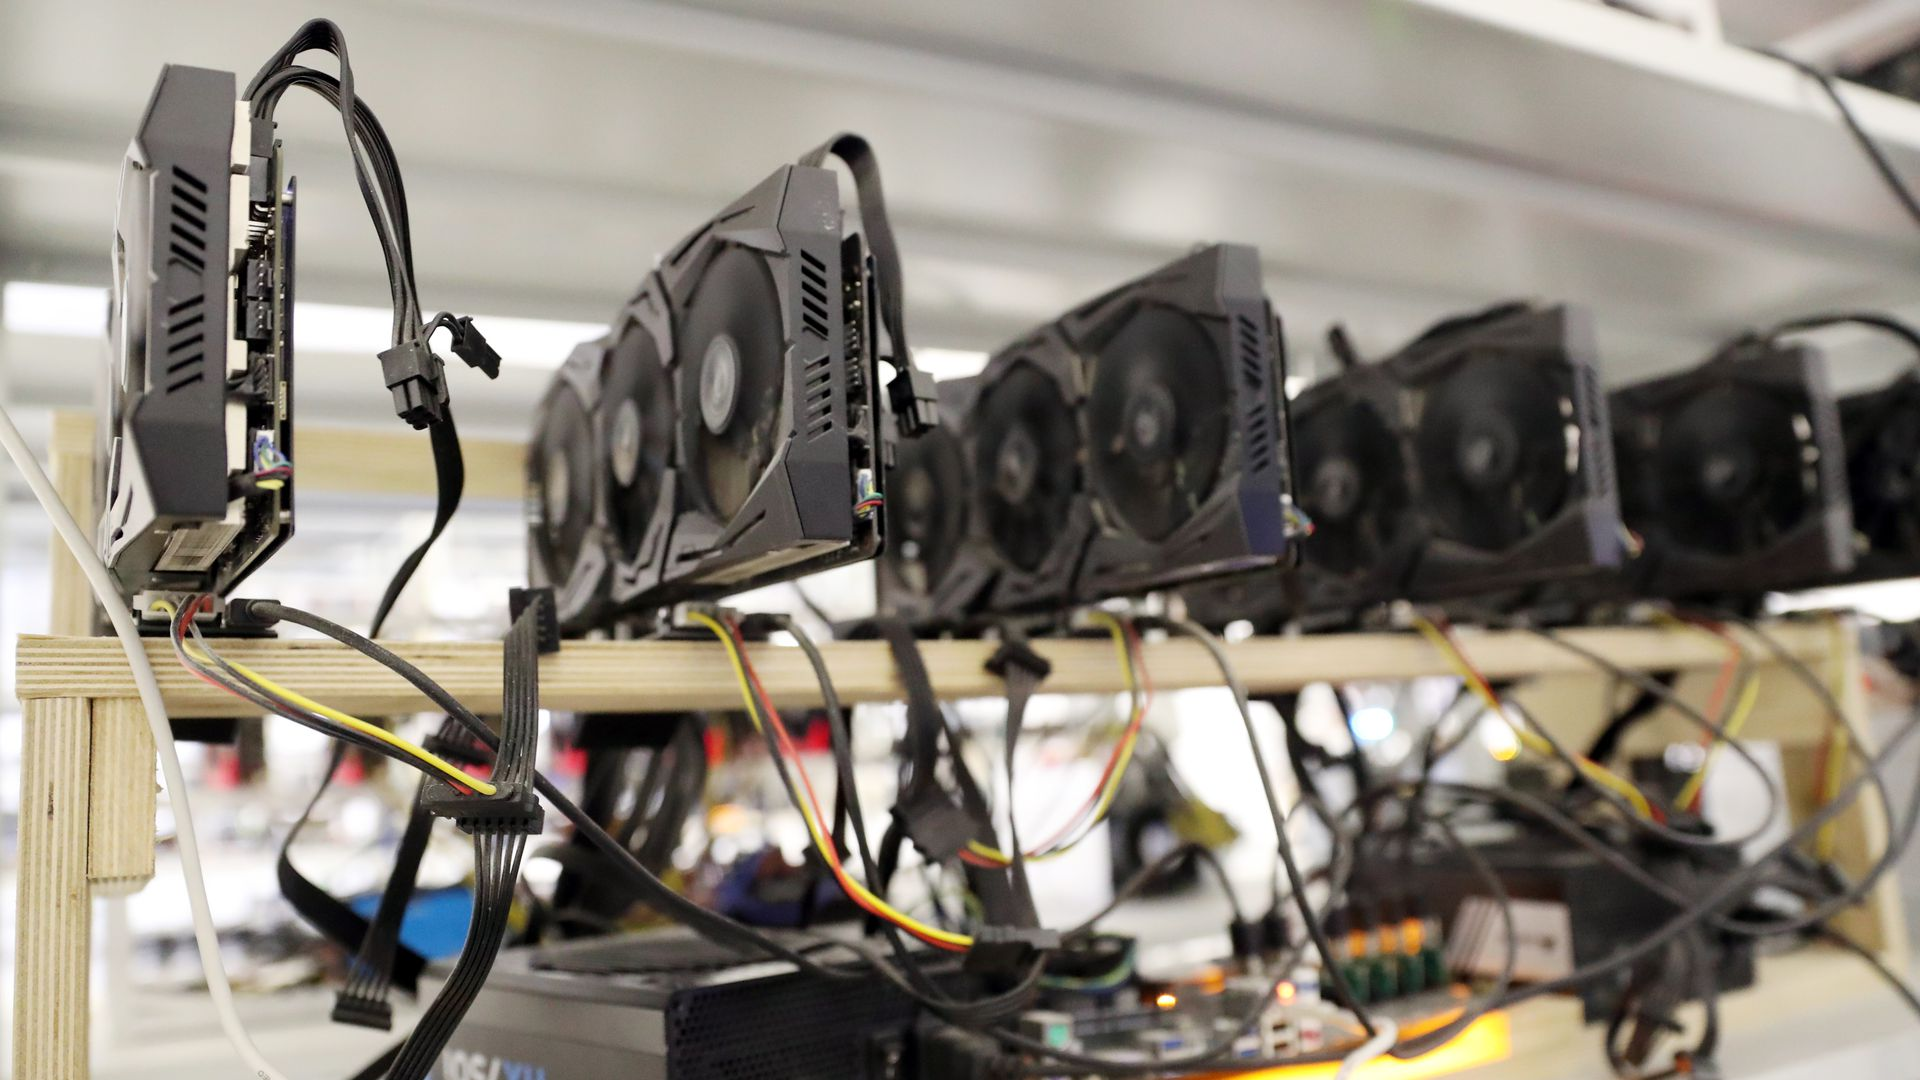 Hardware at the SberBit cryptocurrency mining equipment facility. Vyacheslav Prokofyev/TASS